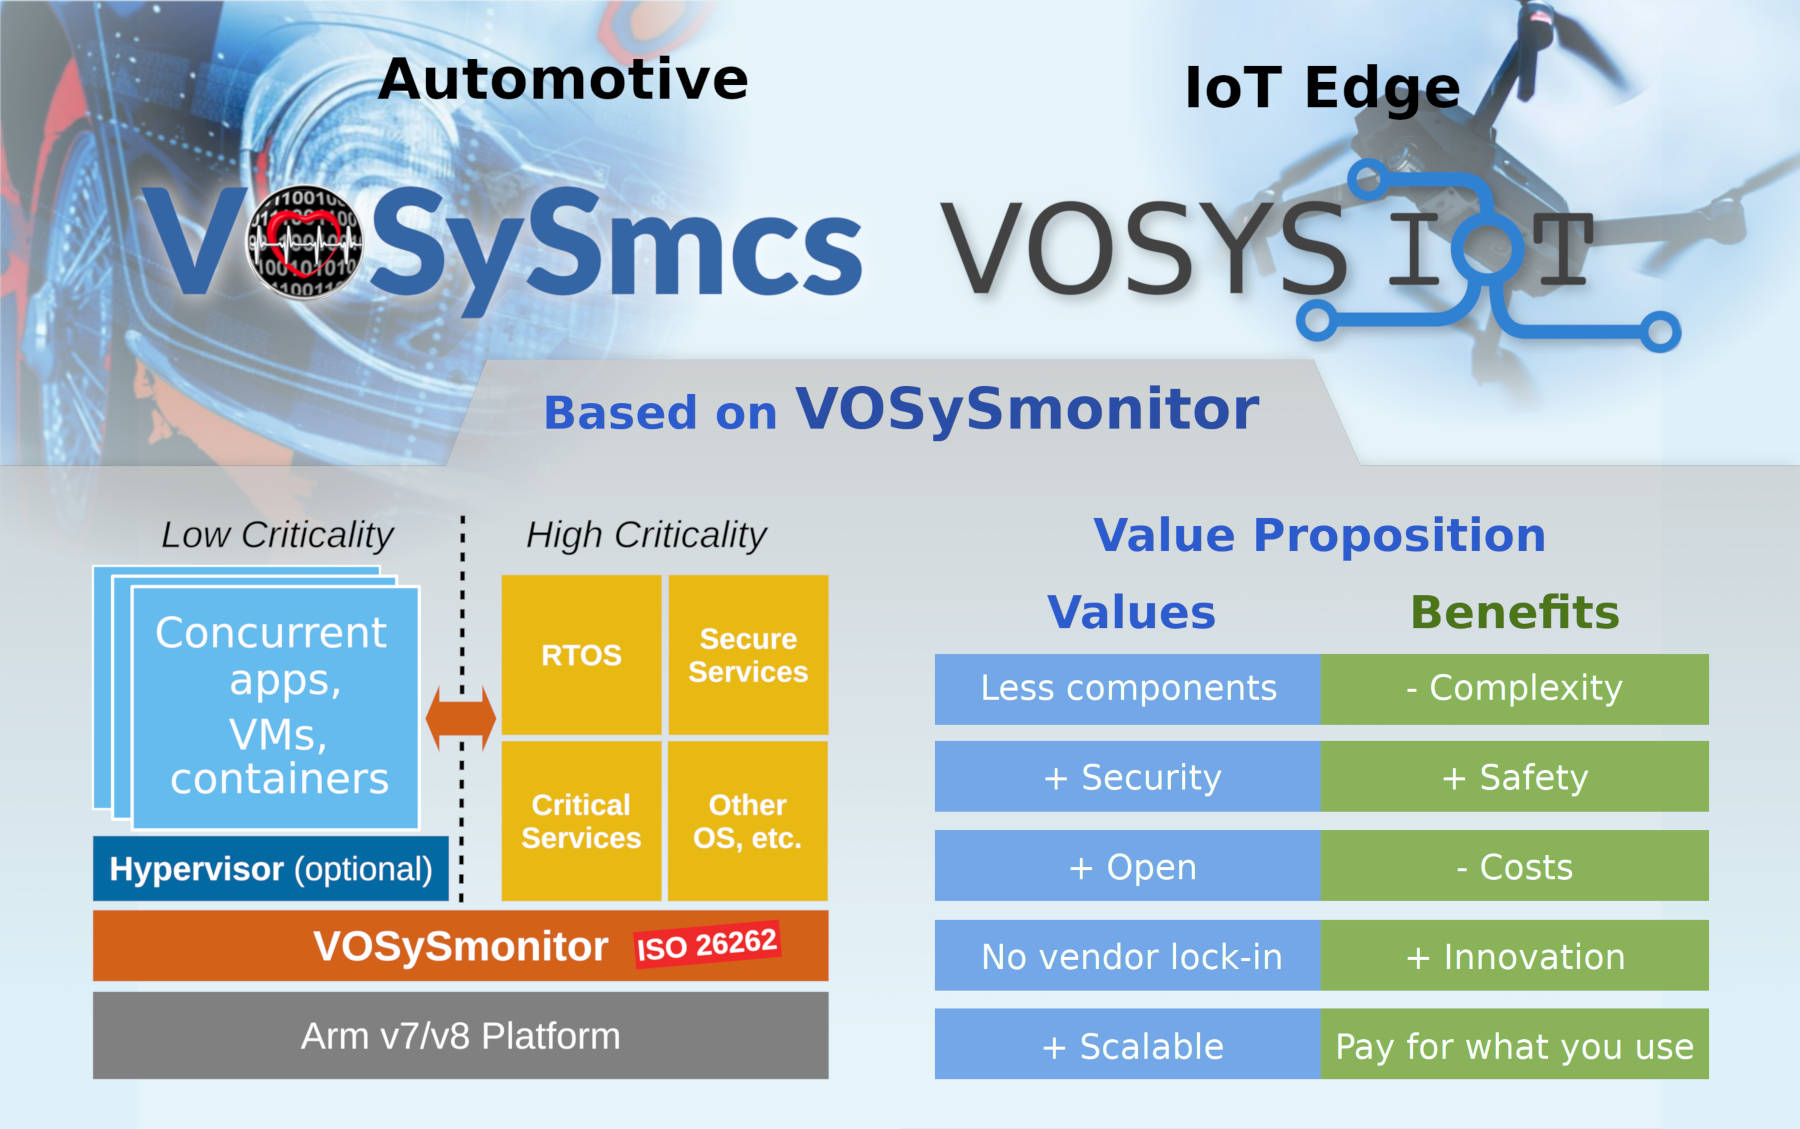 VOSySmcs - Automotive mixed-criticality virtualization product software stack